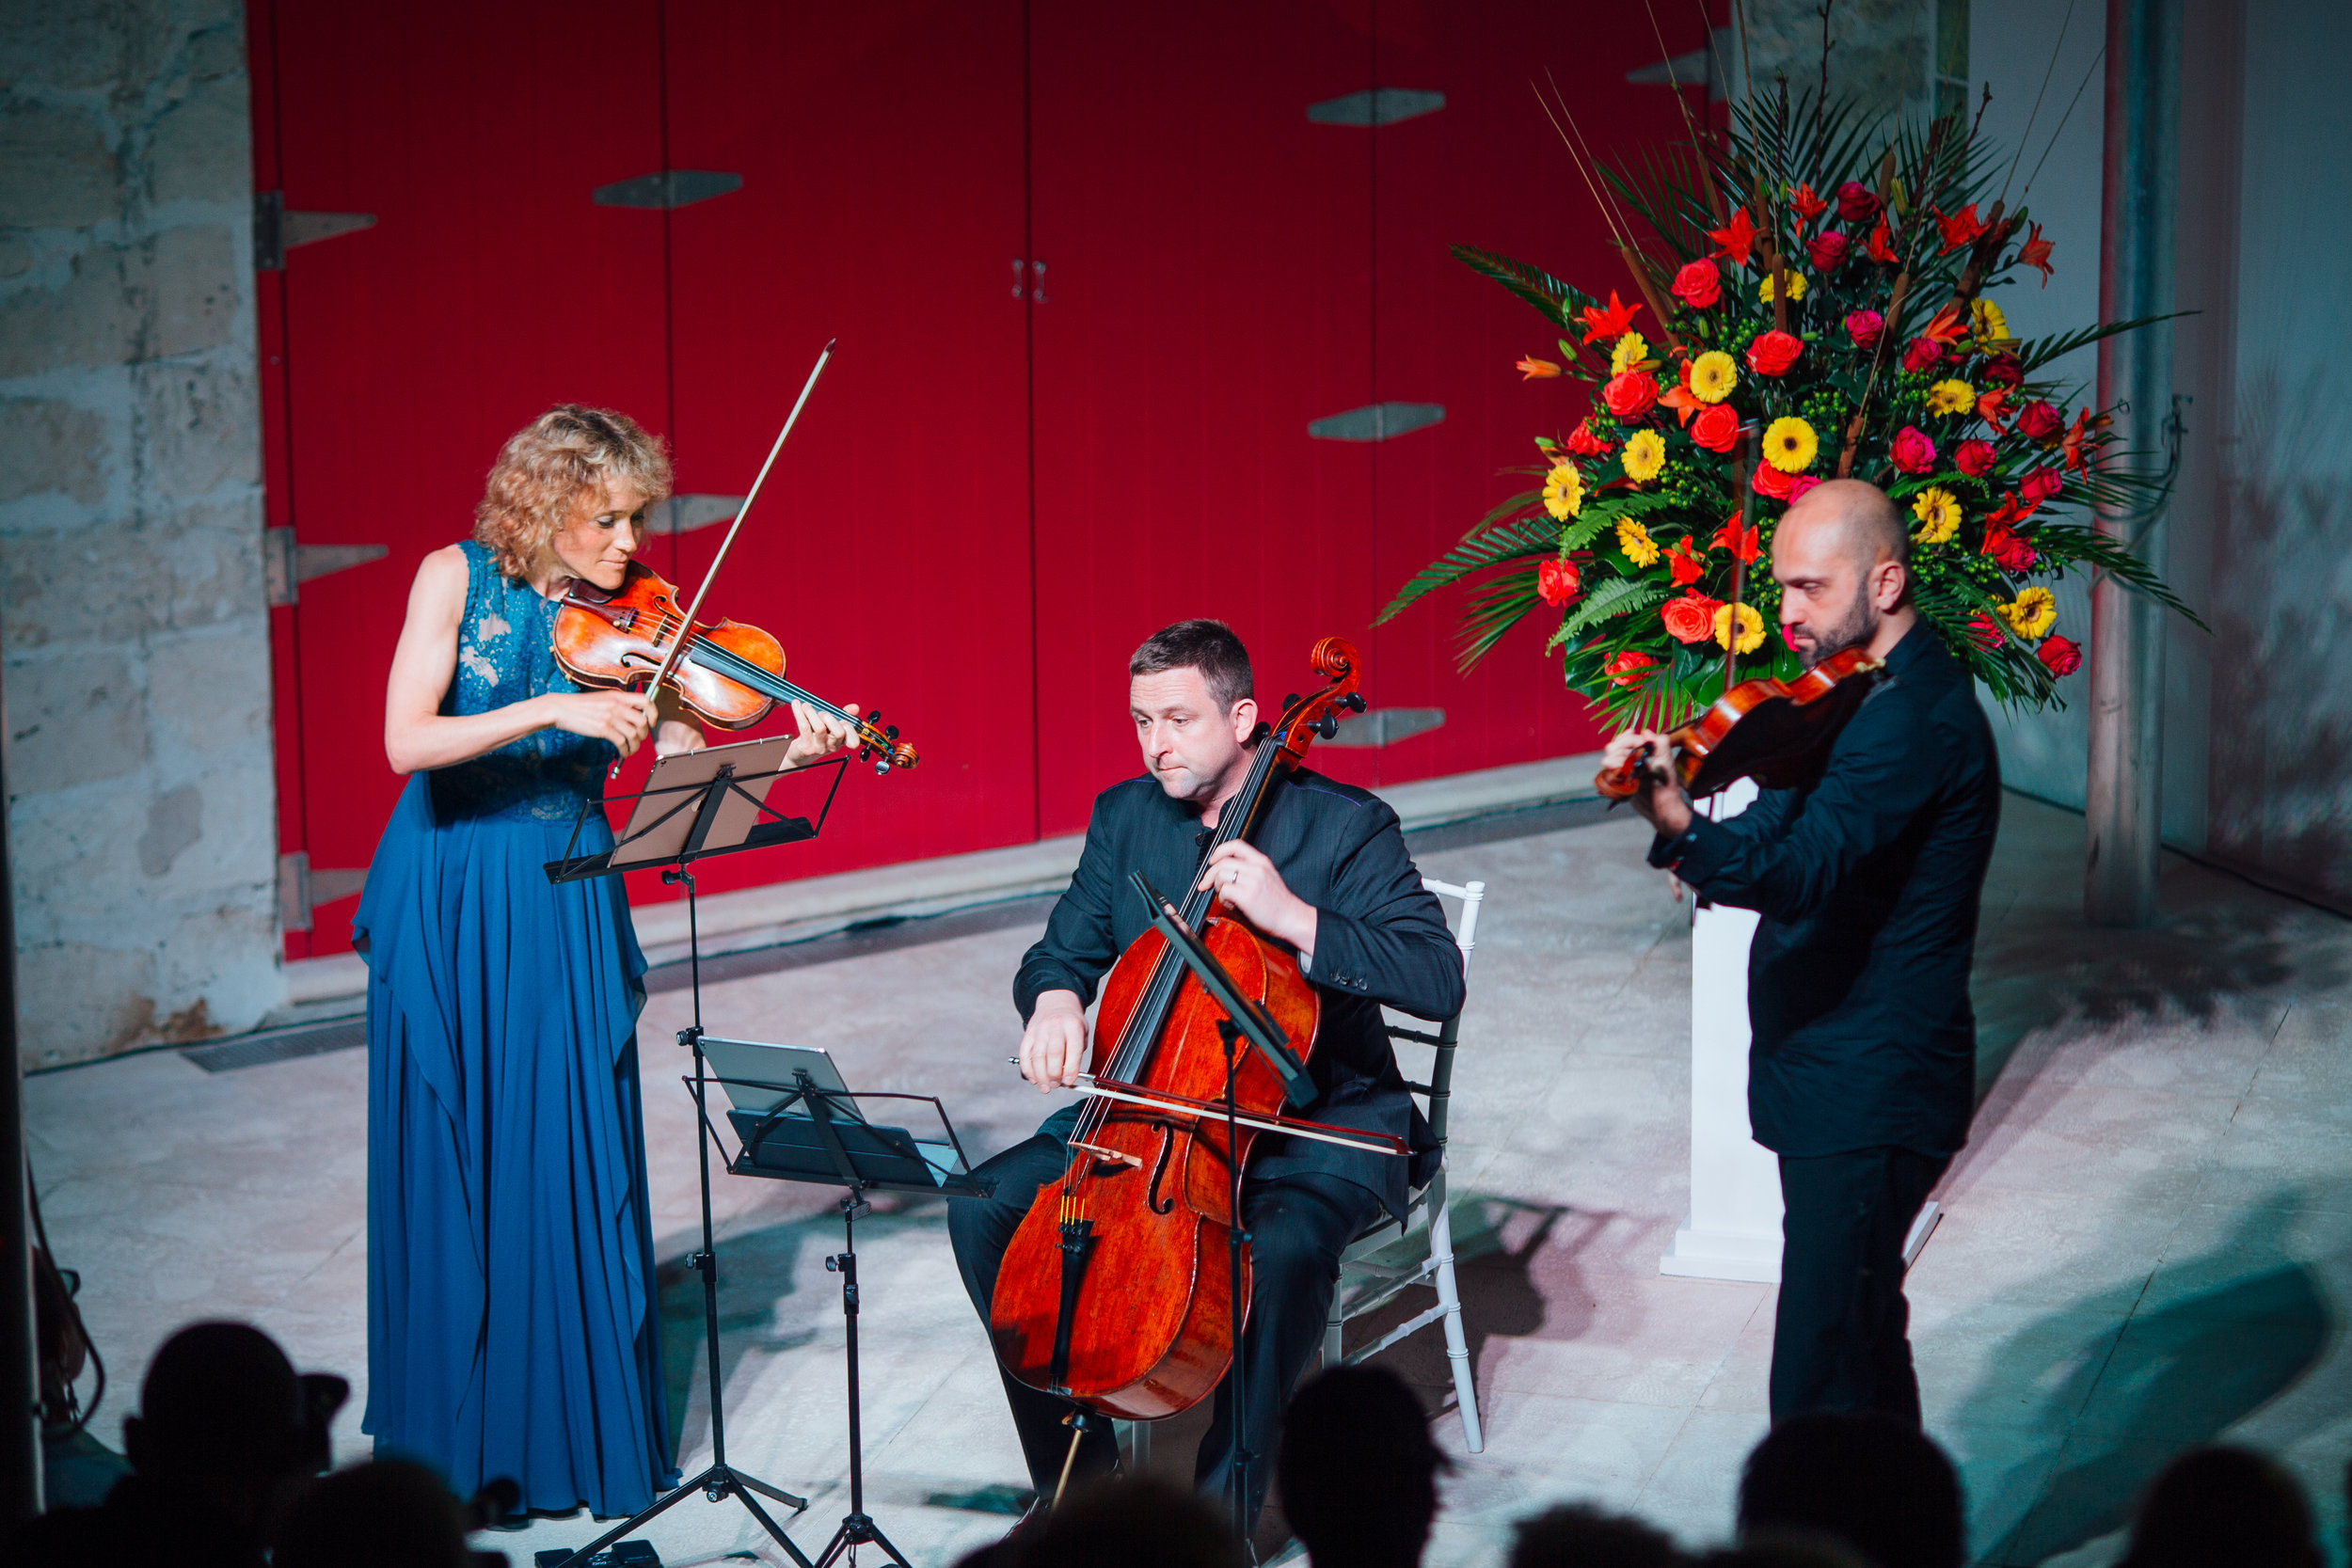 The Ayriel Trio performing renditions from the likes of Schubert and Mozart. Images courtesy of Kovah Duncombe Photography and Cacique International